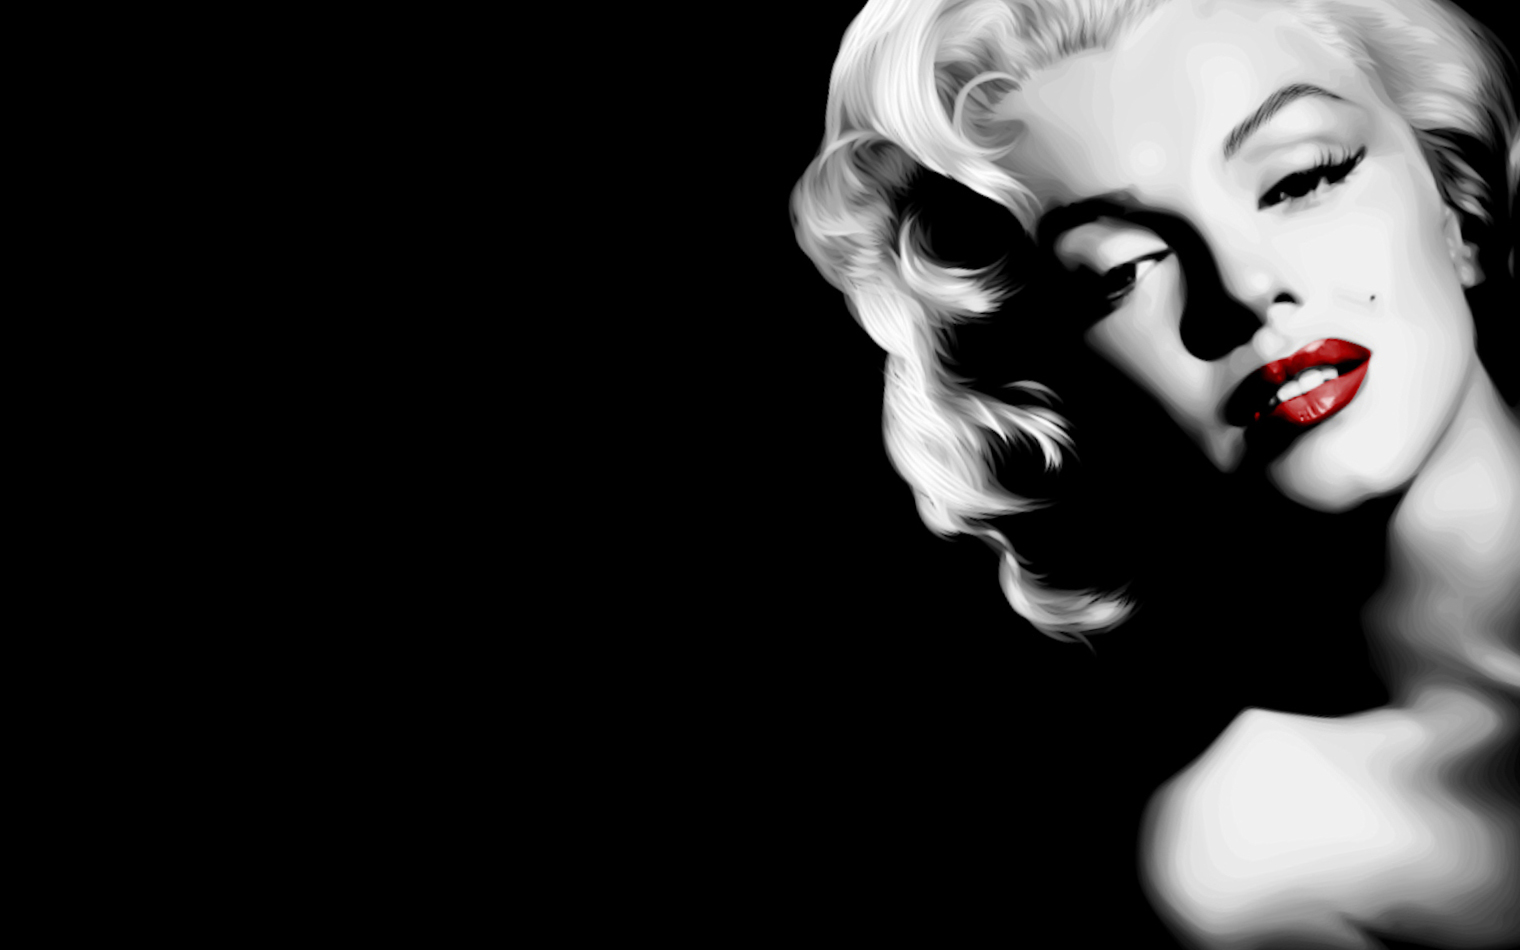 Hd Abstract Wallpapers For Iphone 5 Marilyn Monroe Pictures Images